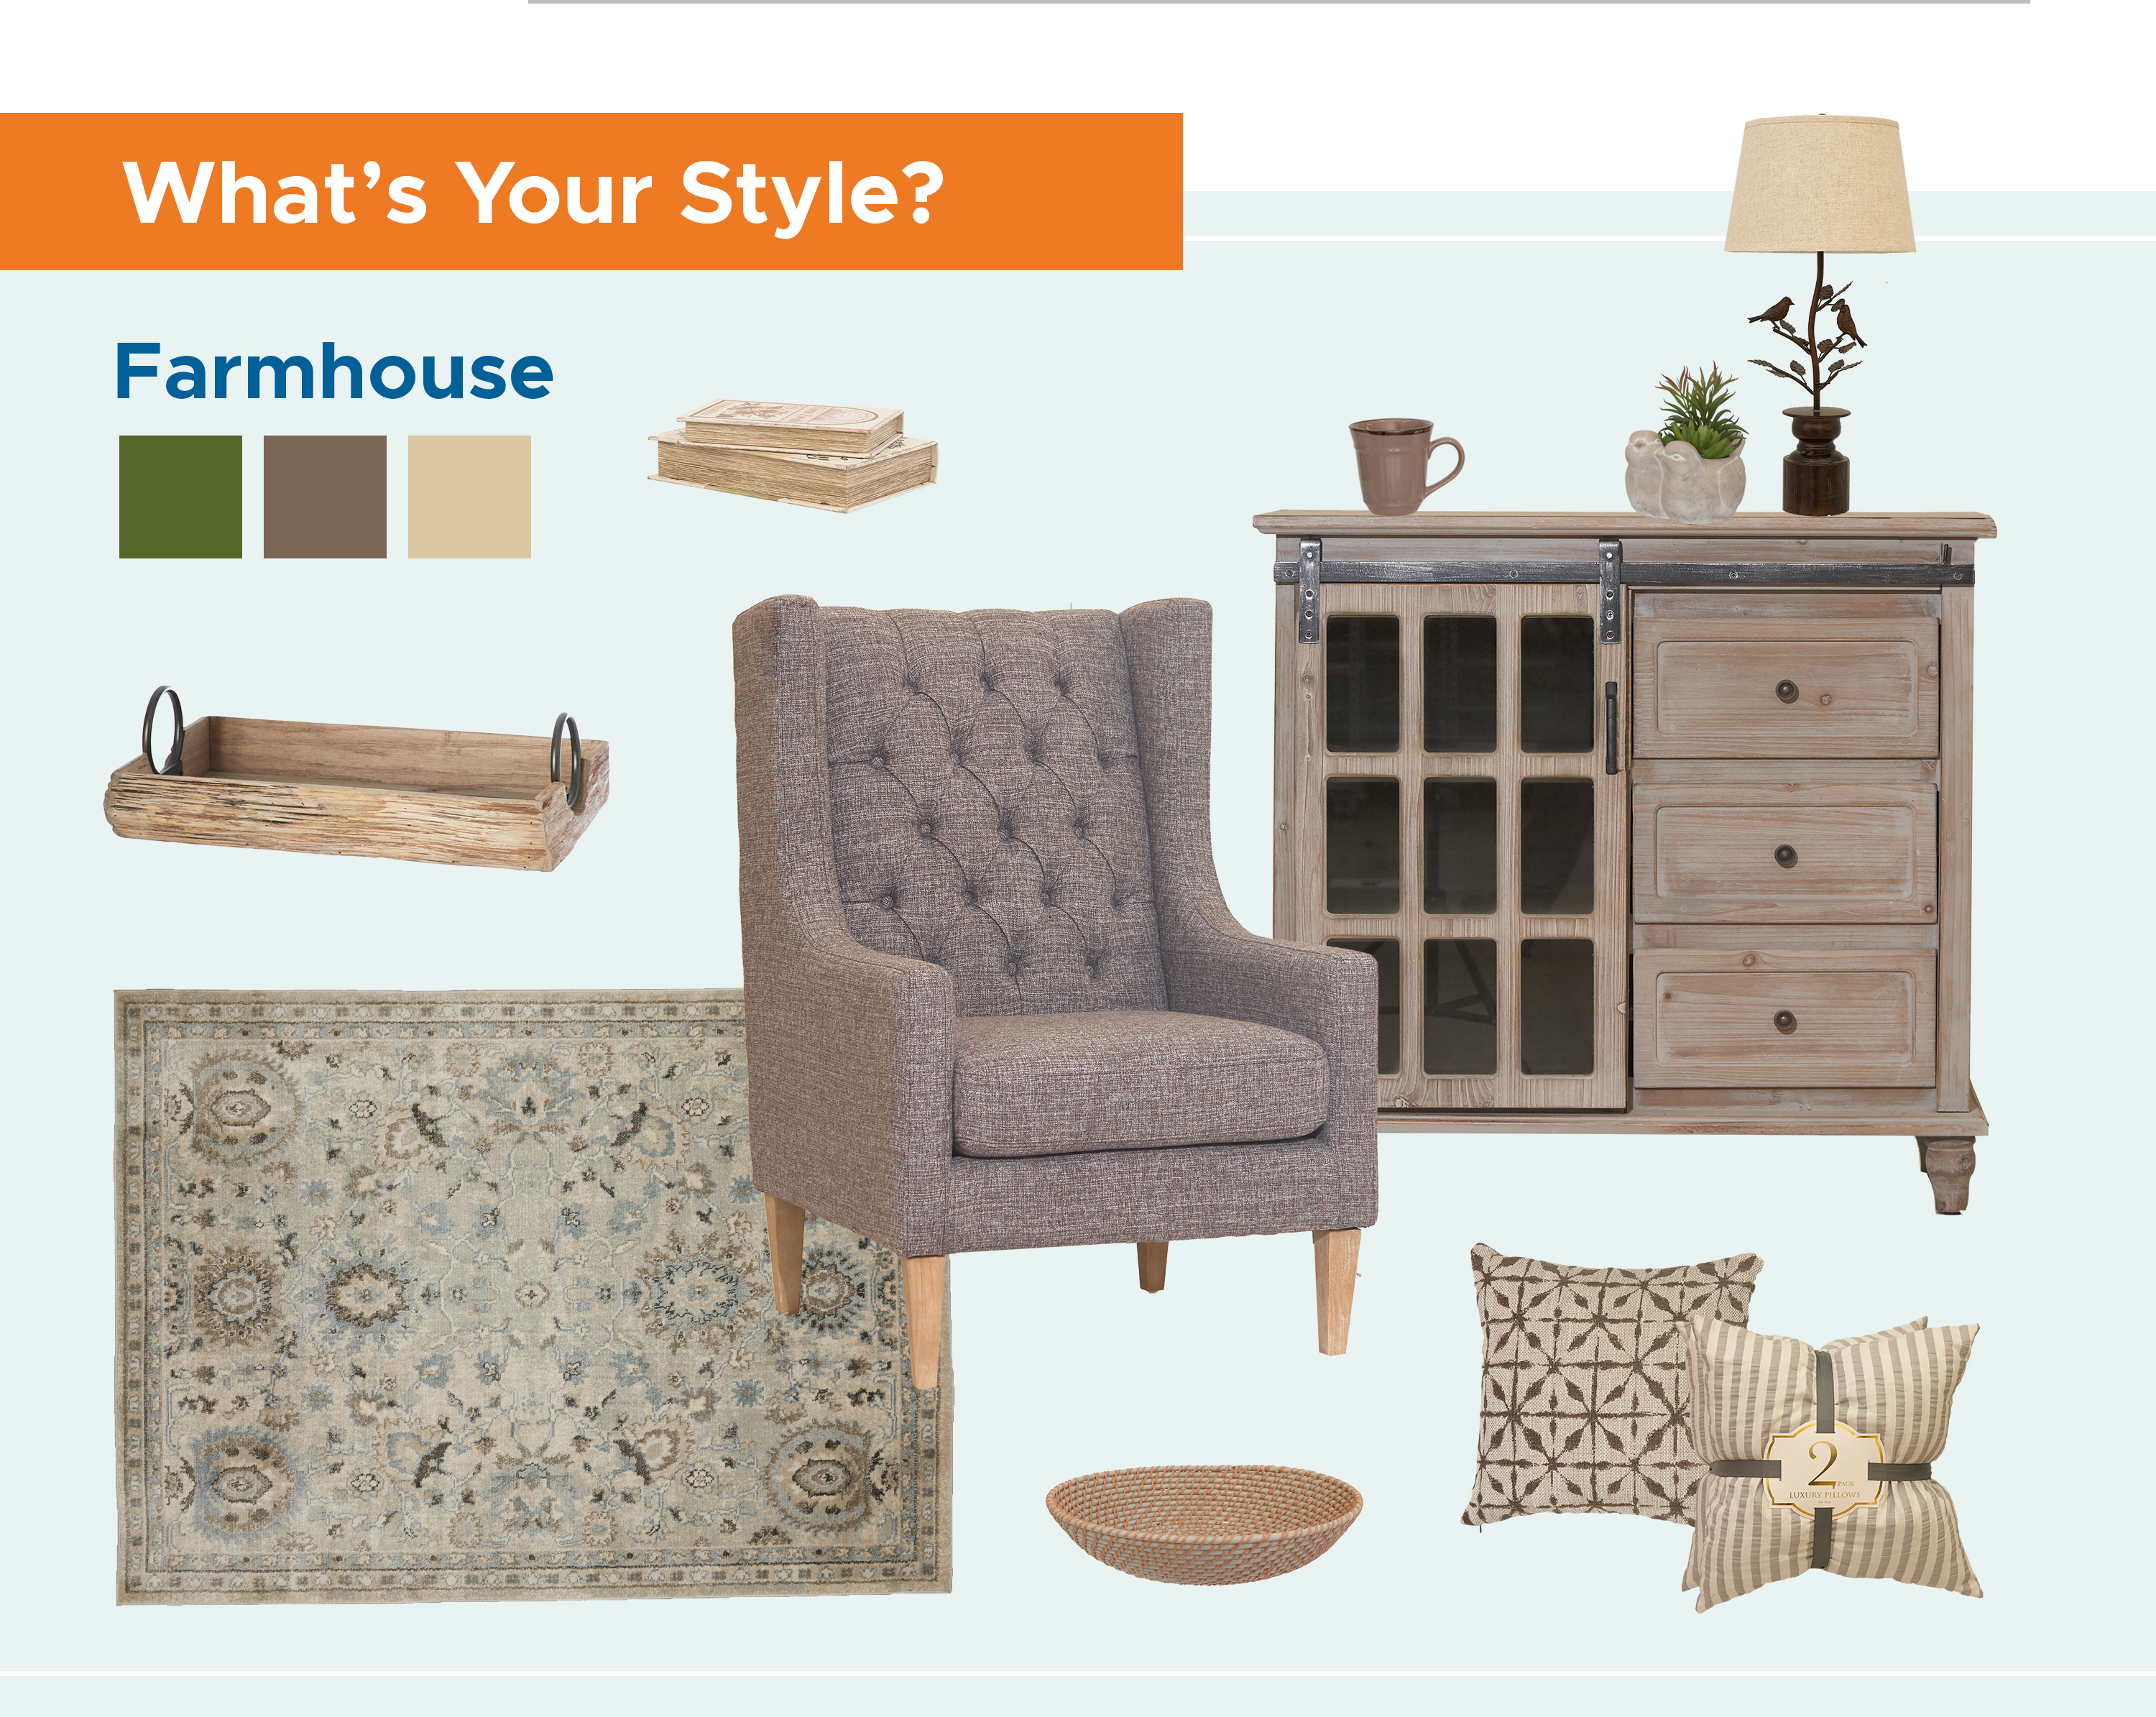 What's Your Style? Farmhouse